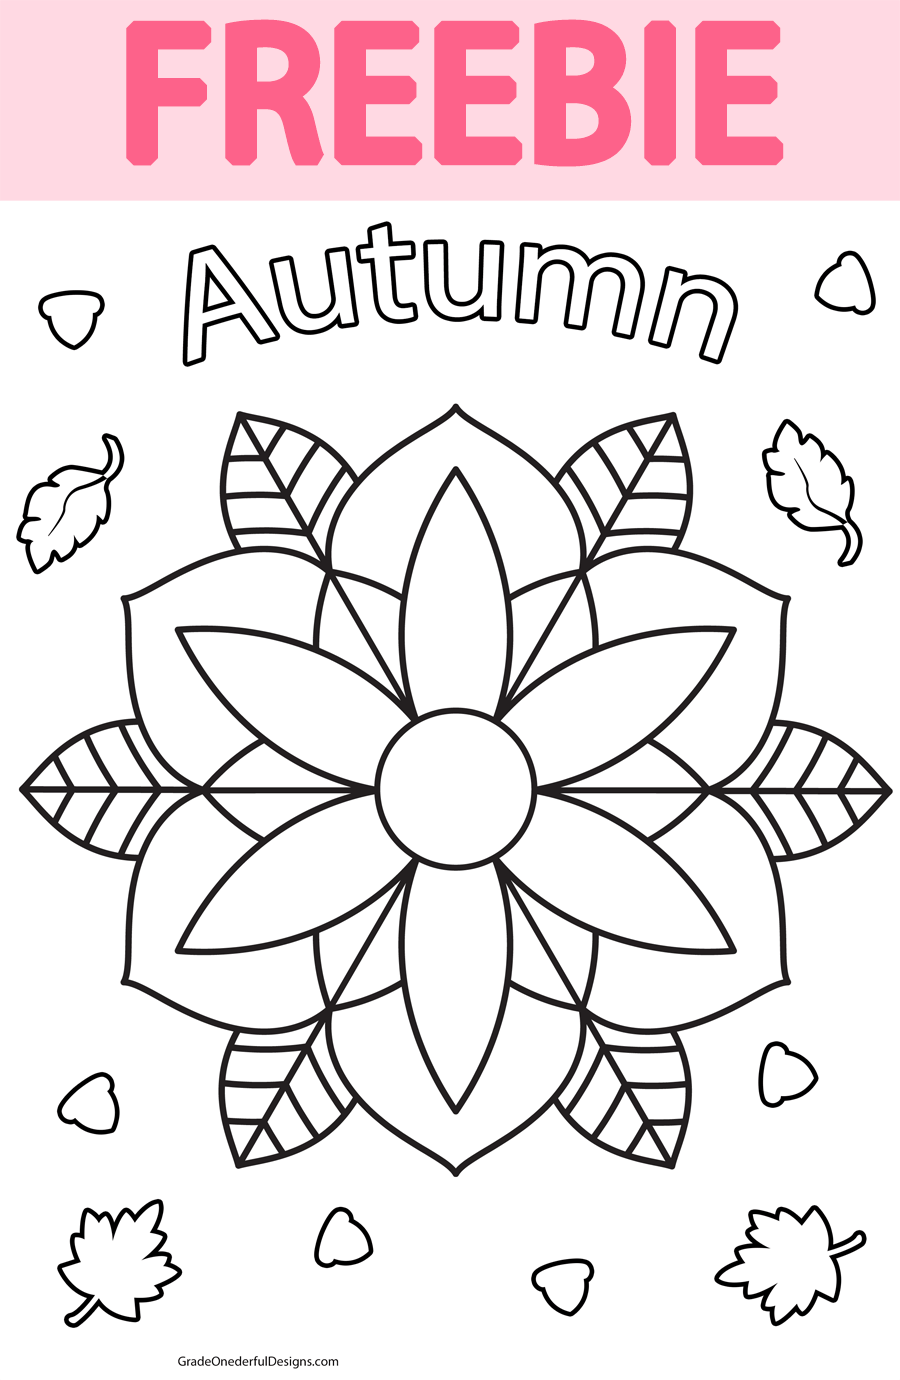 Grab this autumn mandala colouring page for your classroom or home